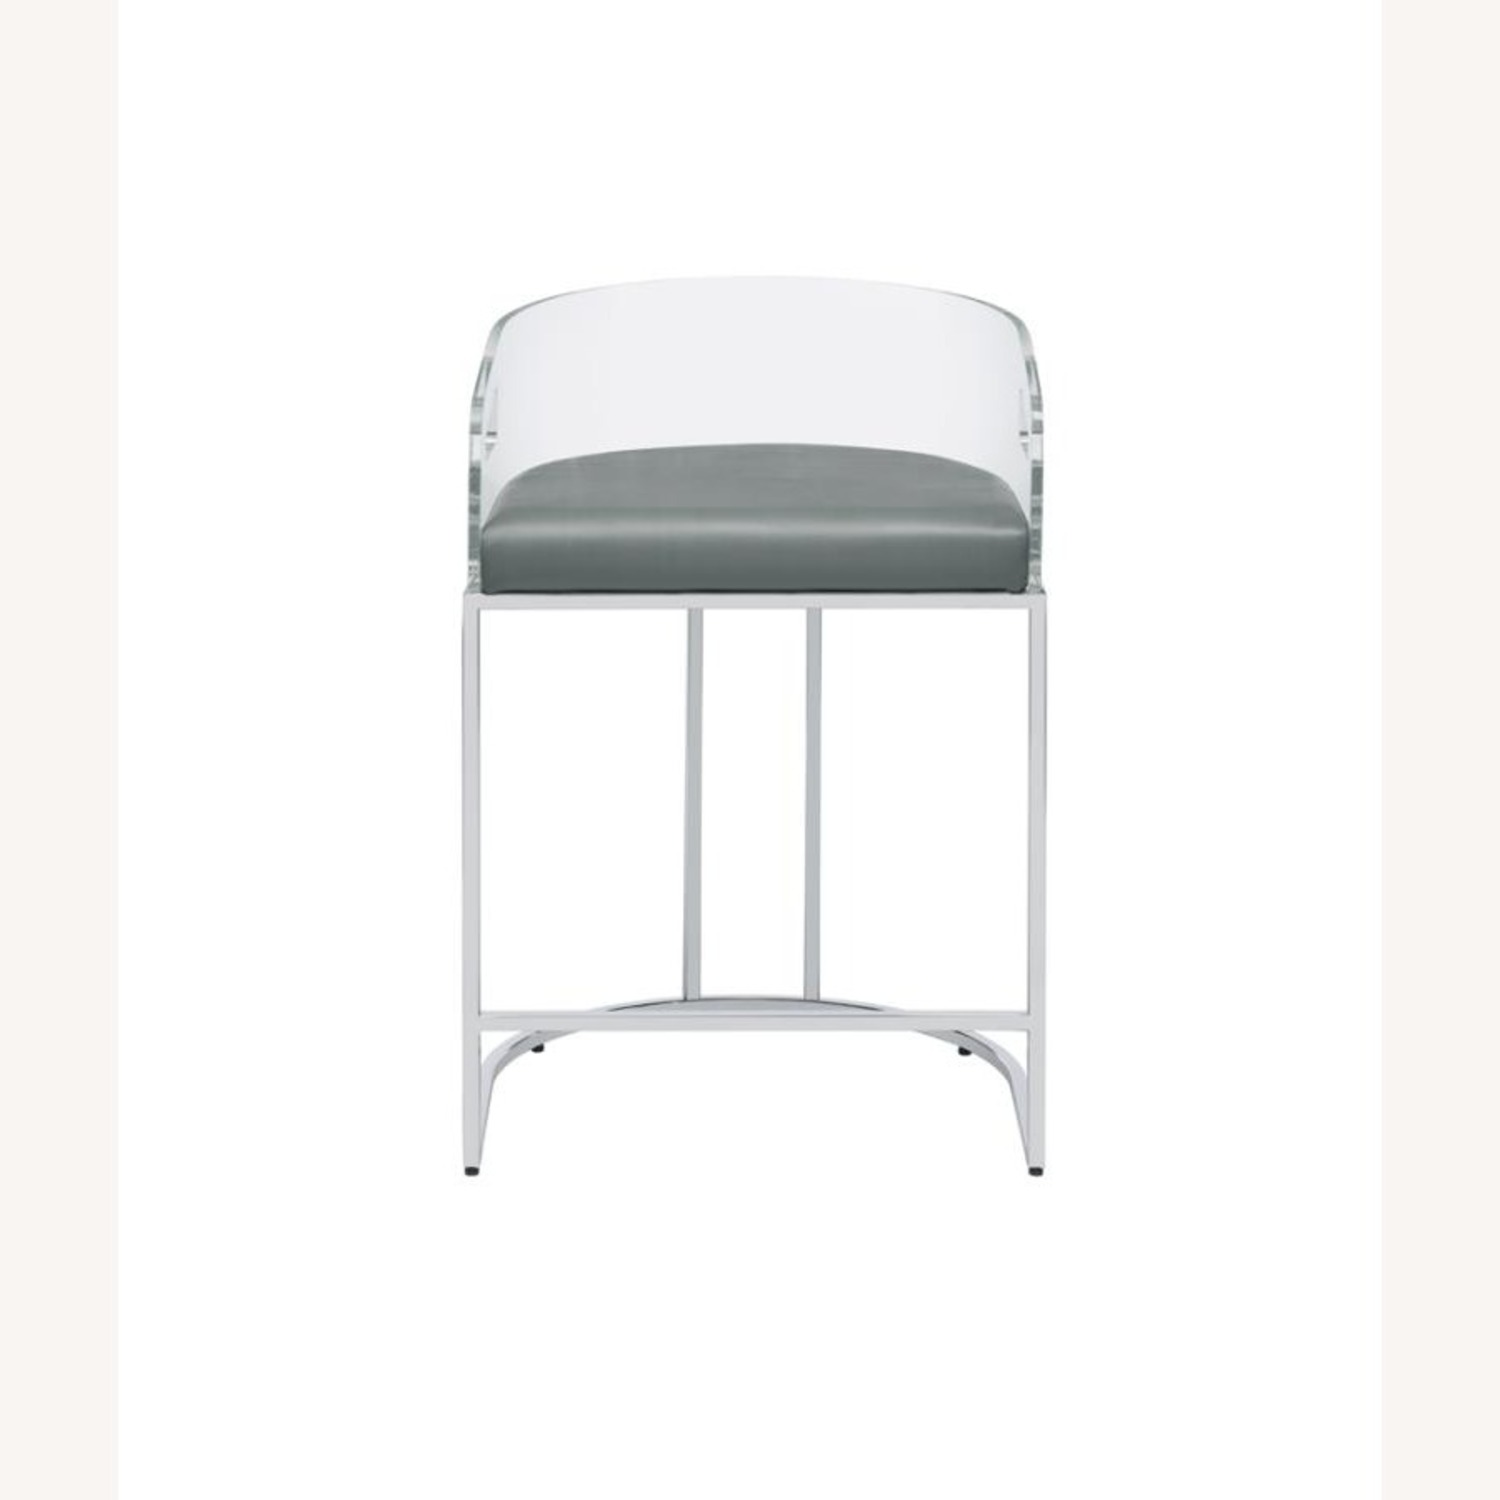 Stool In Grey Leather W/ Clear Acrylic Back - image-1